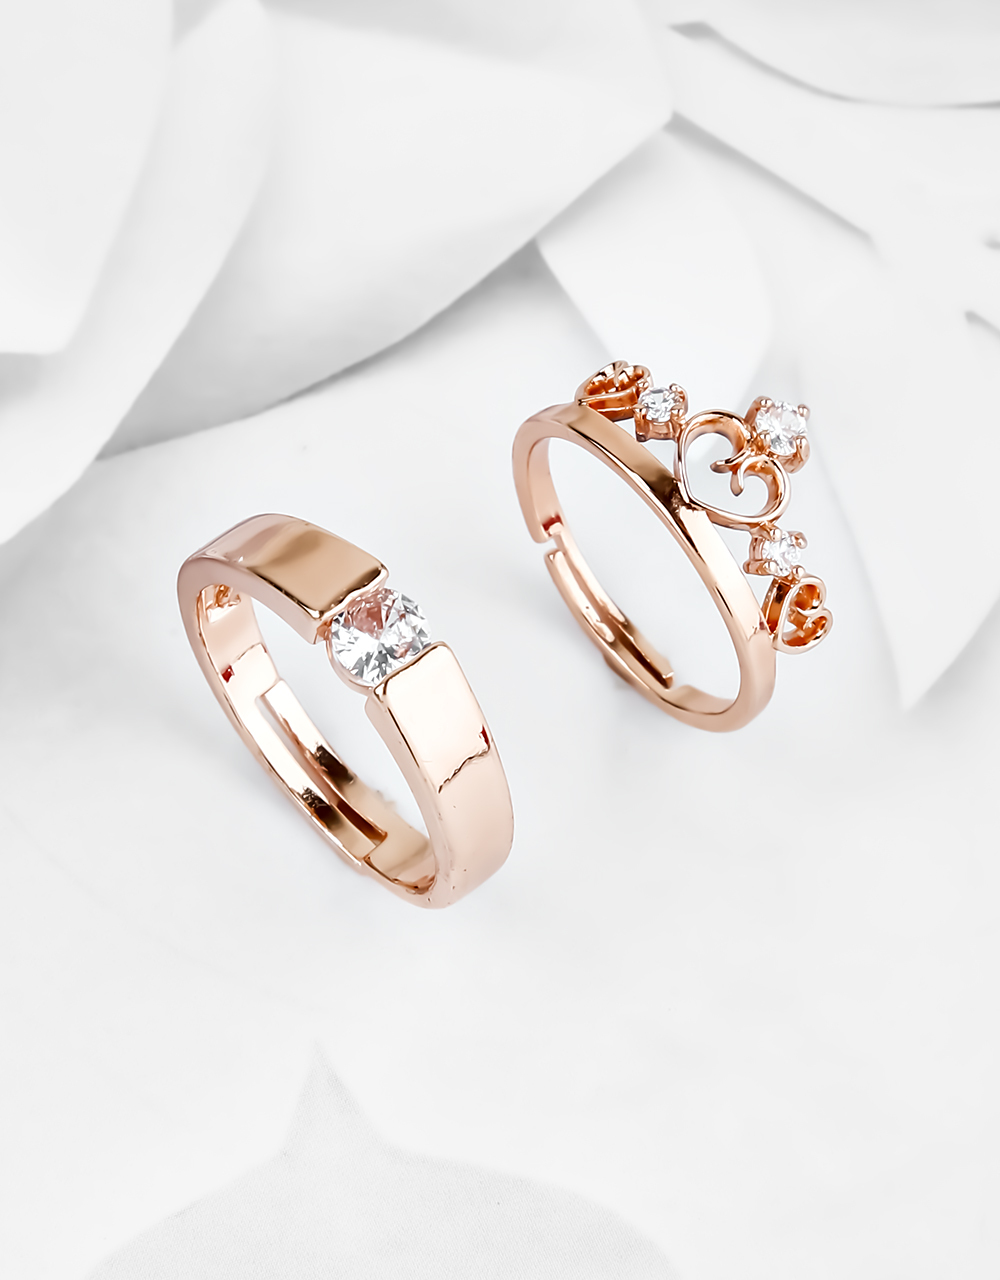 Stylish Kind & Queen Style Stone Studded Couple Rings